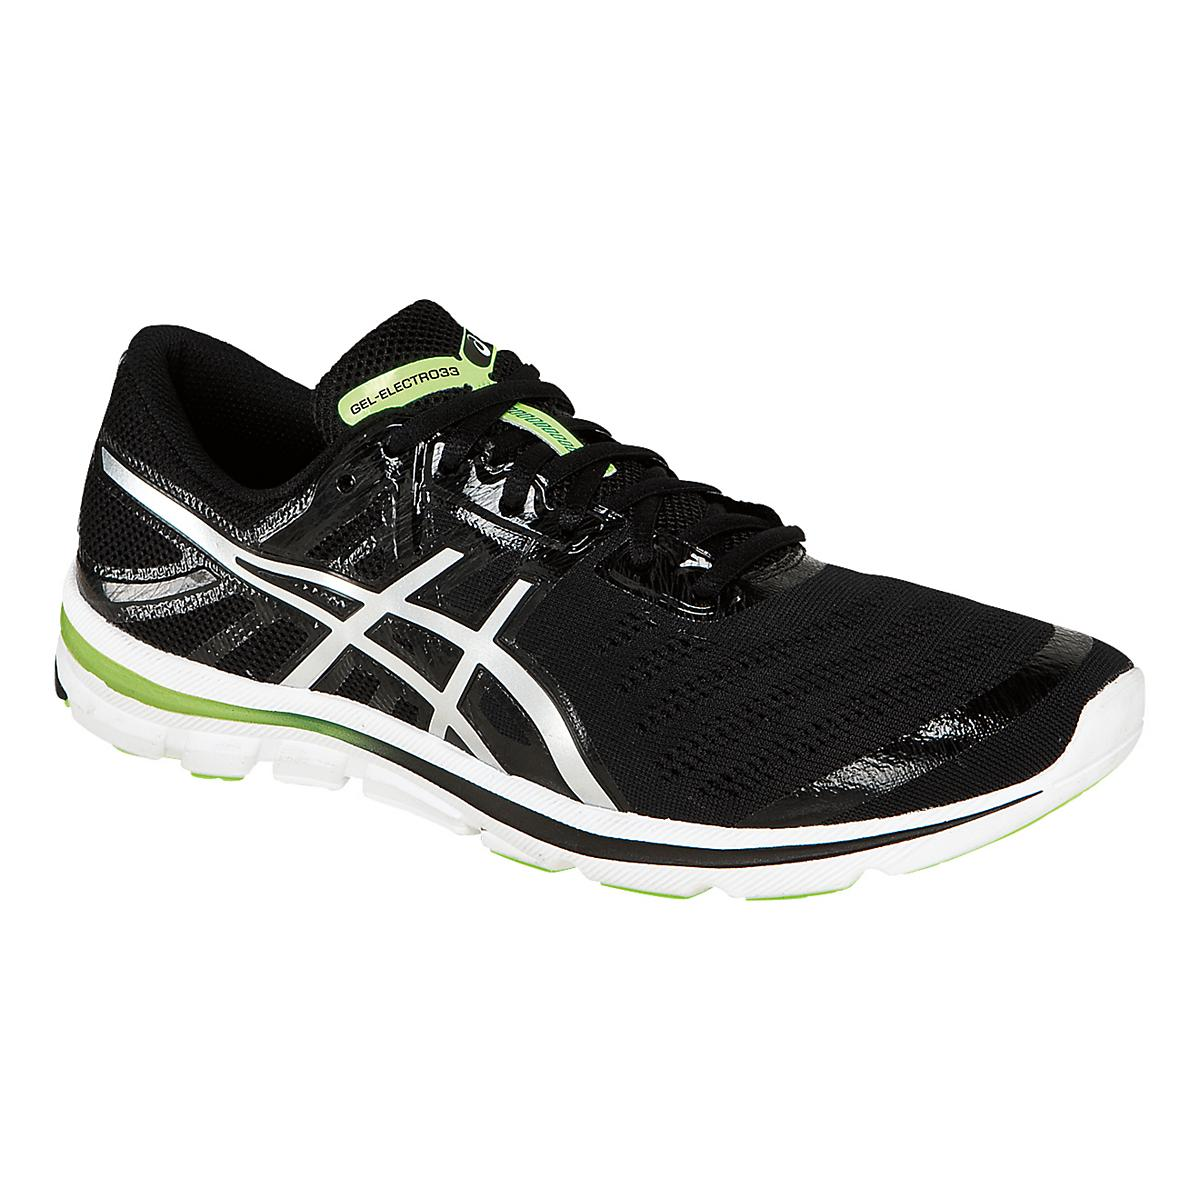 Merrell Electro Mens Running Shoes